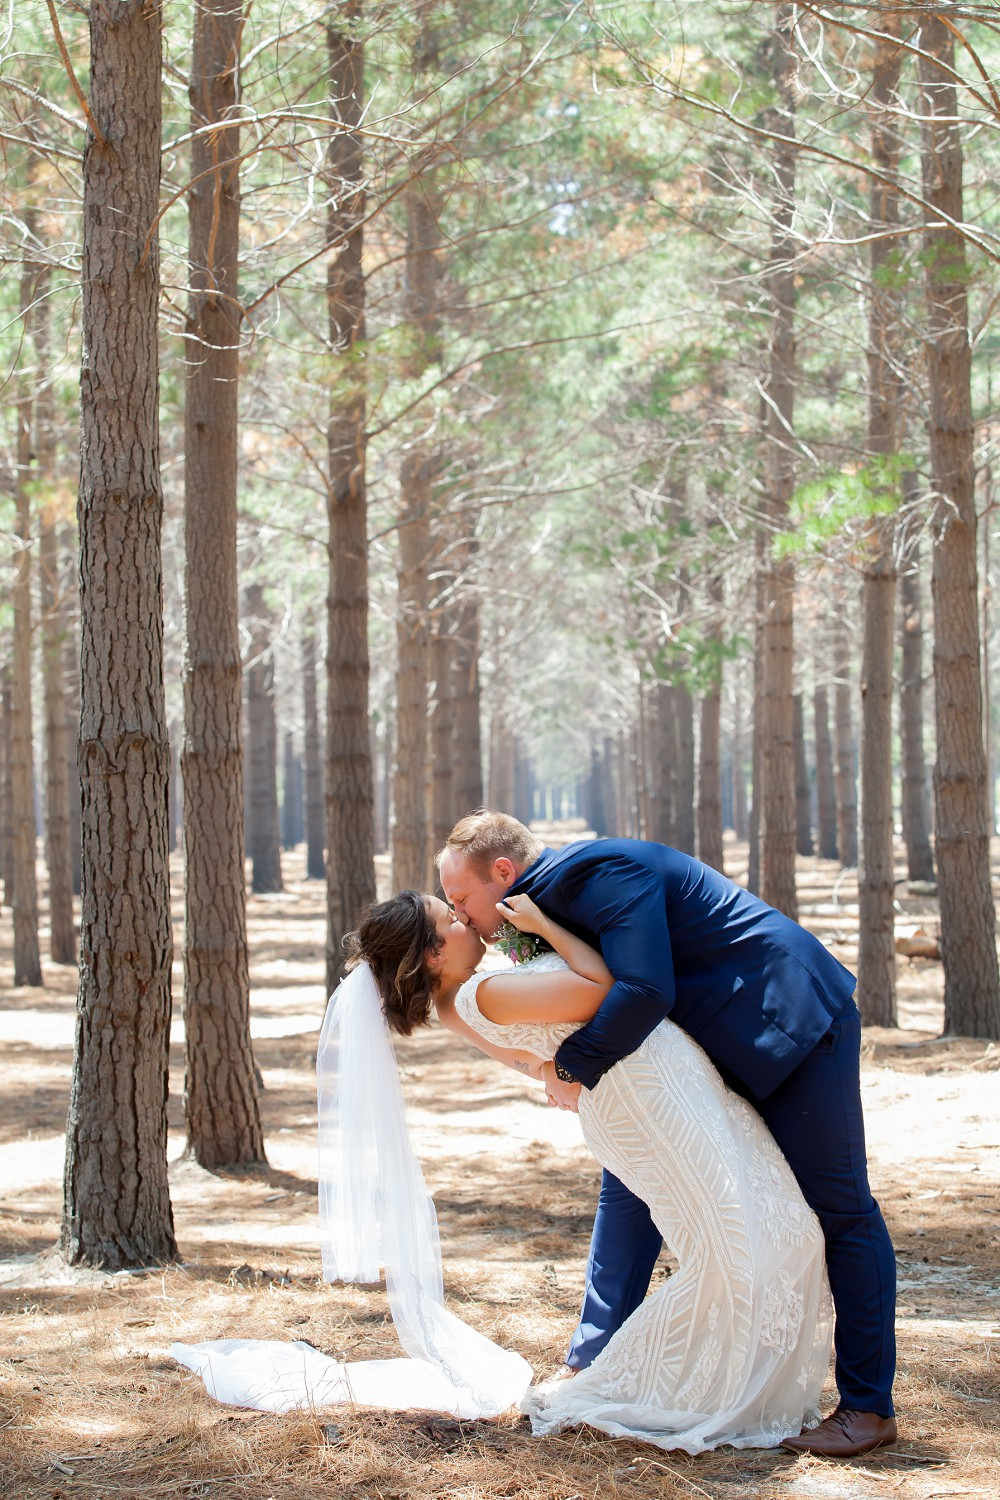 Cape Town Vow Renewal Expressions Photography 092